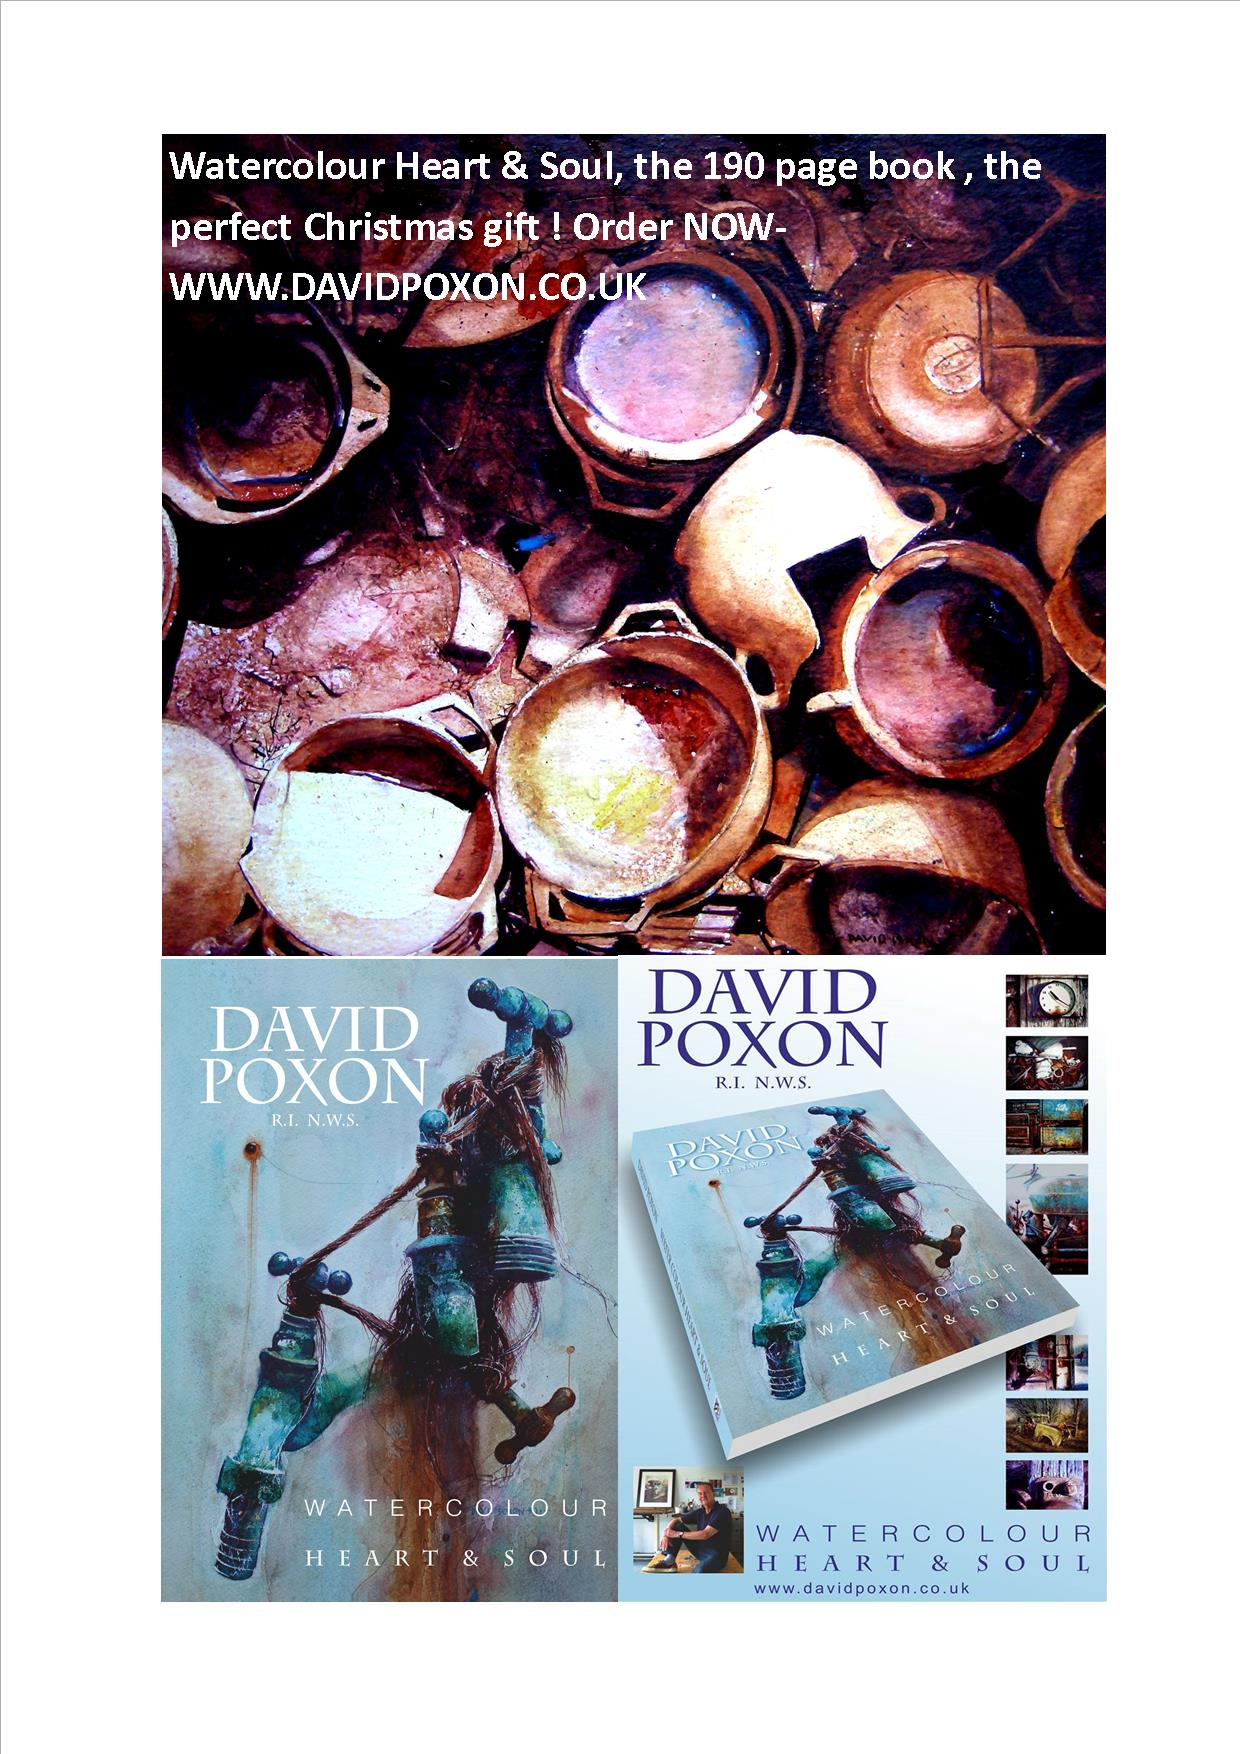 Watercolour Book, Heart and Soul by David Poxon